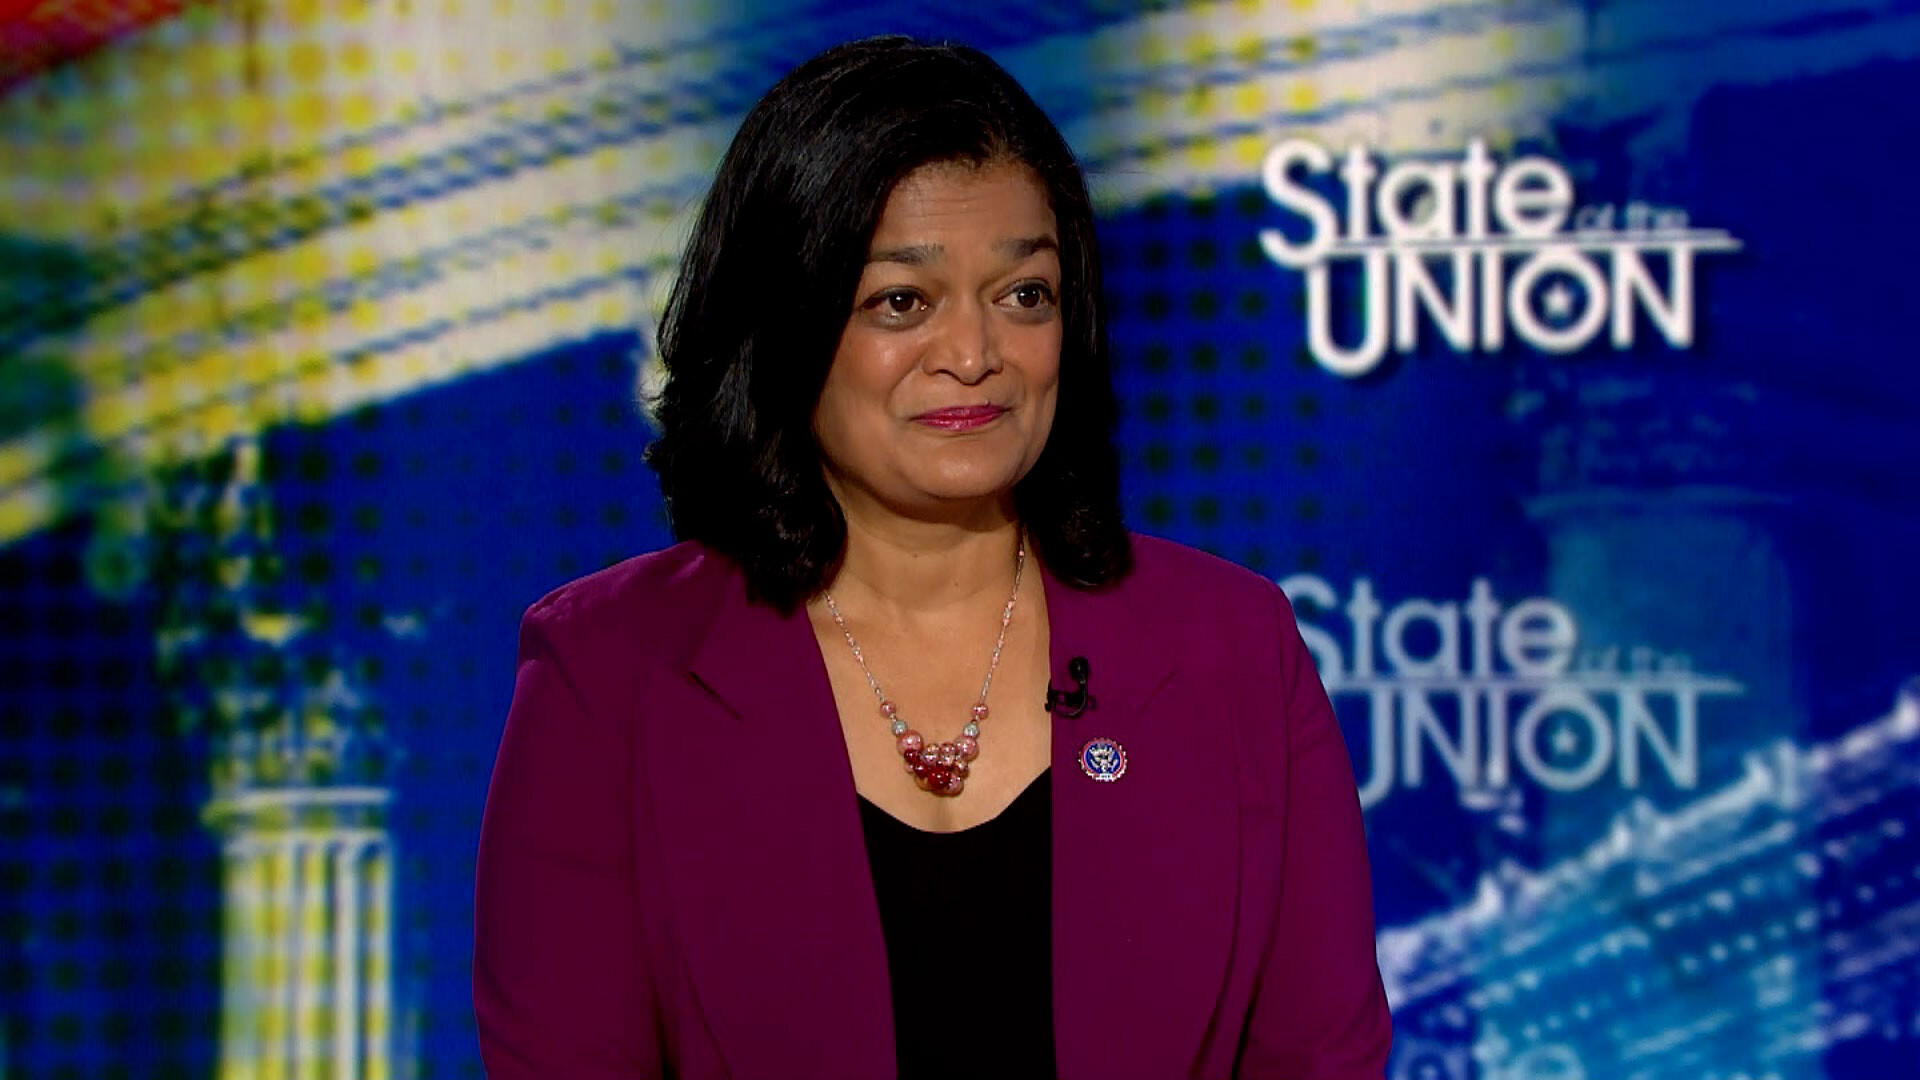 Rep. Pramila Jayapal: $1.5 trillion for economic bill is 'too small' and 'not going to happen'